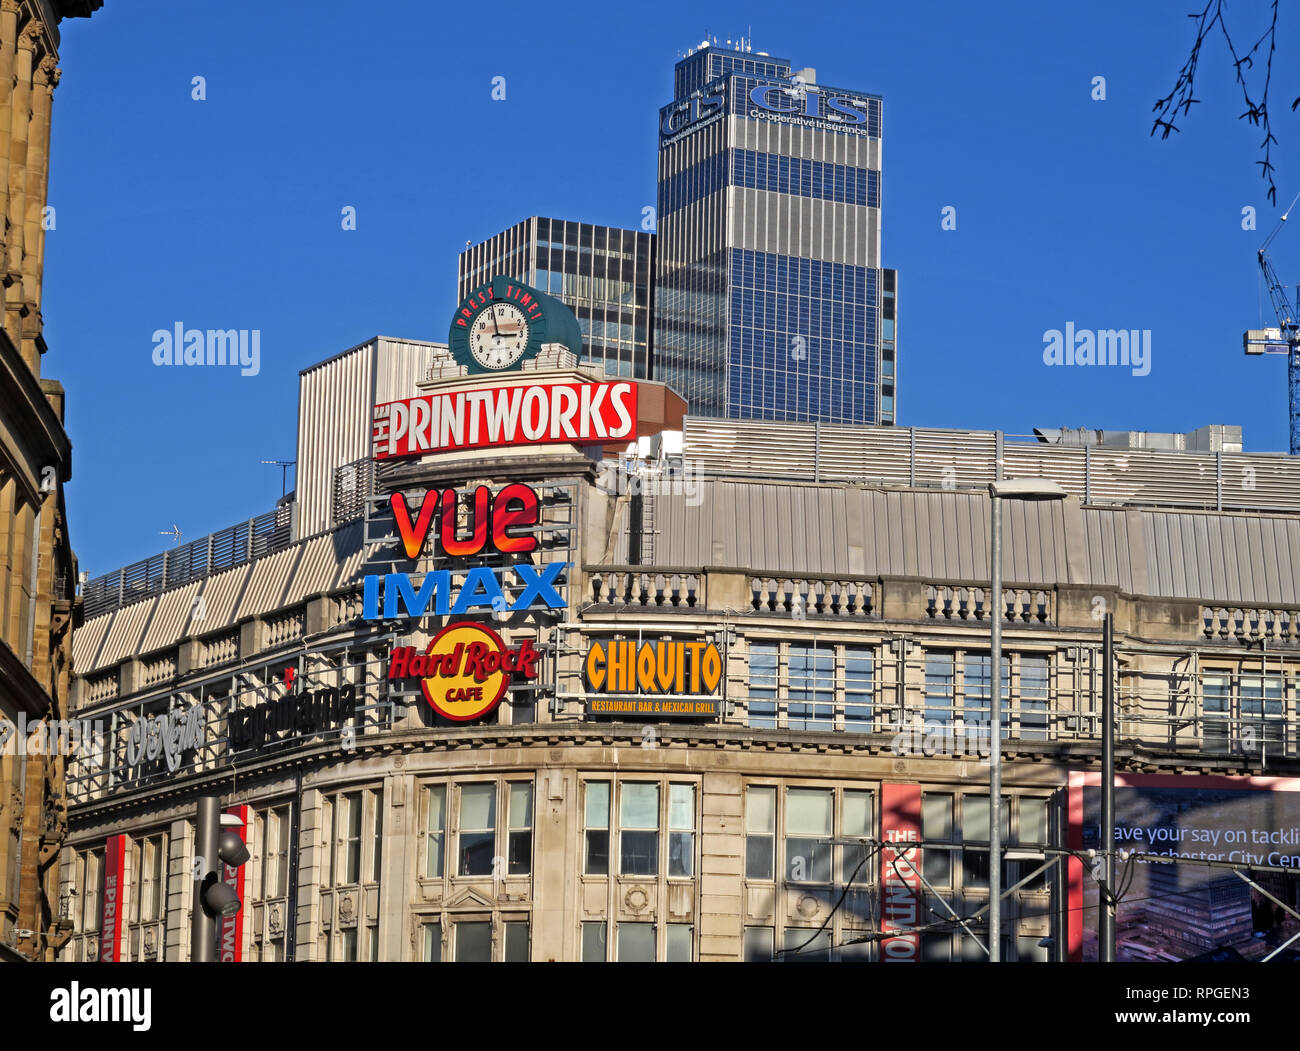 Manchester Printworks Entertainment Venue, 27 Withy Grove, Manchester, England, UK,  M4 2BS - Stock Image